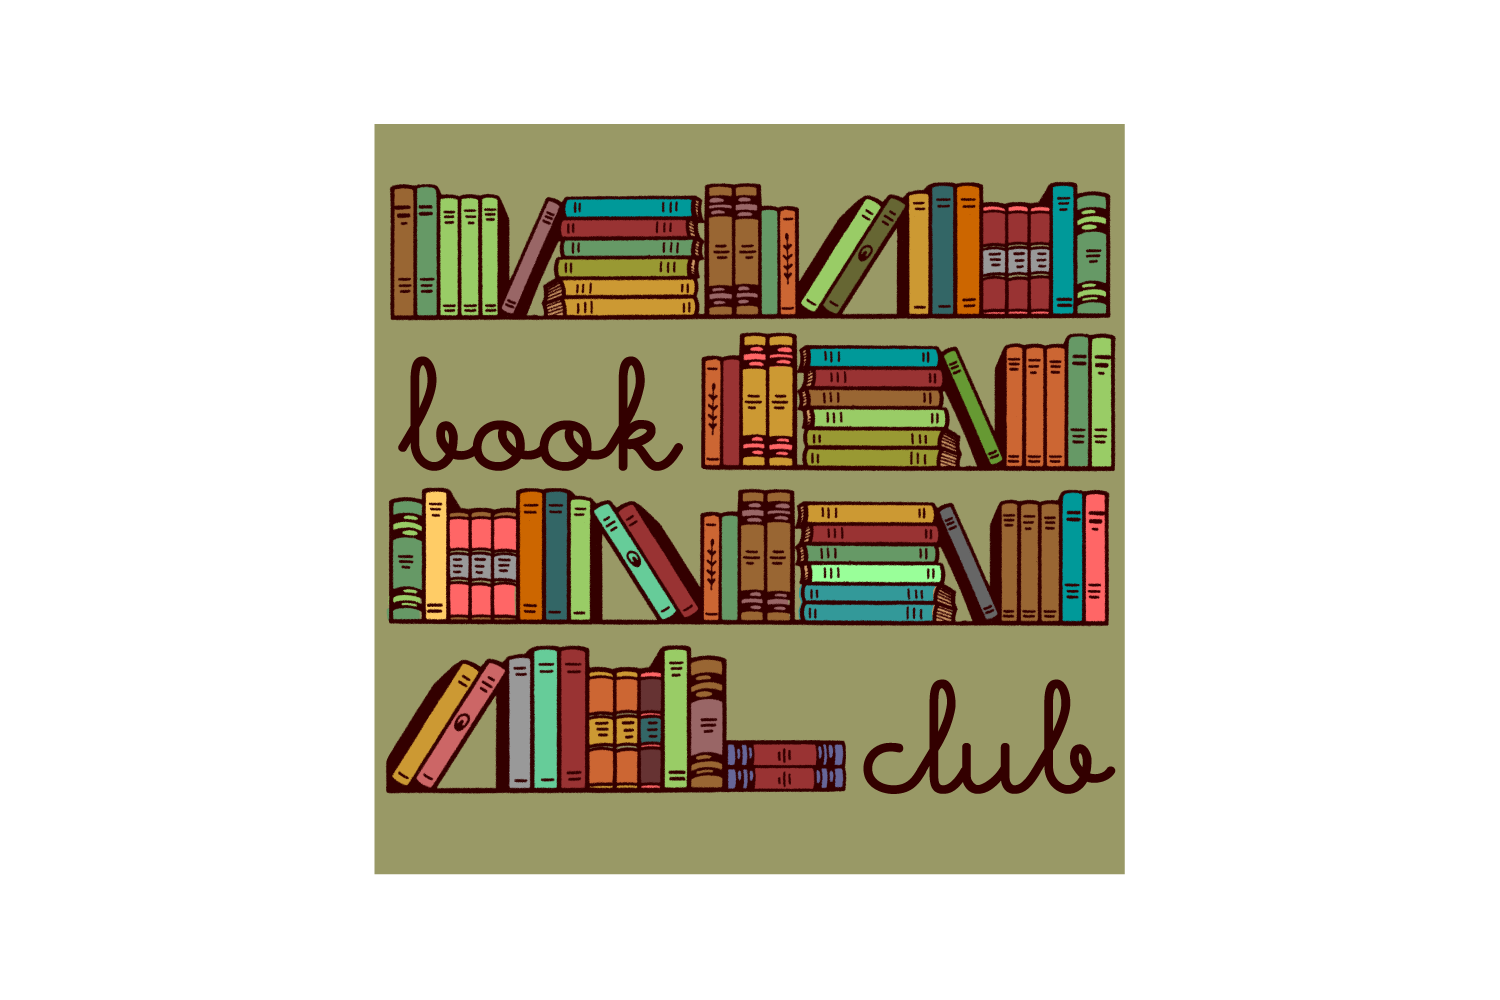 evite-book-club.png